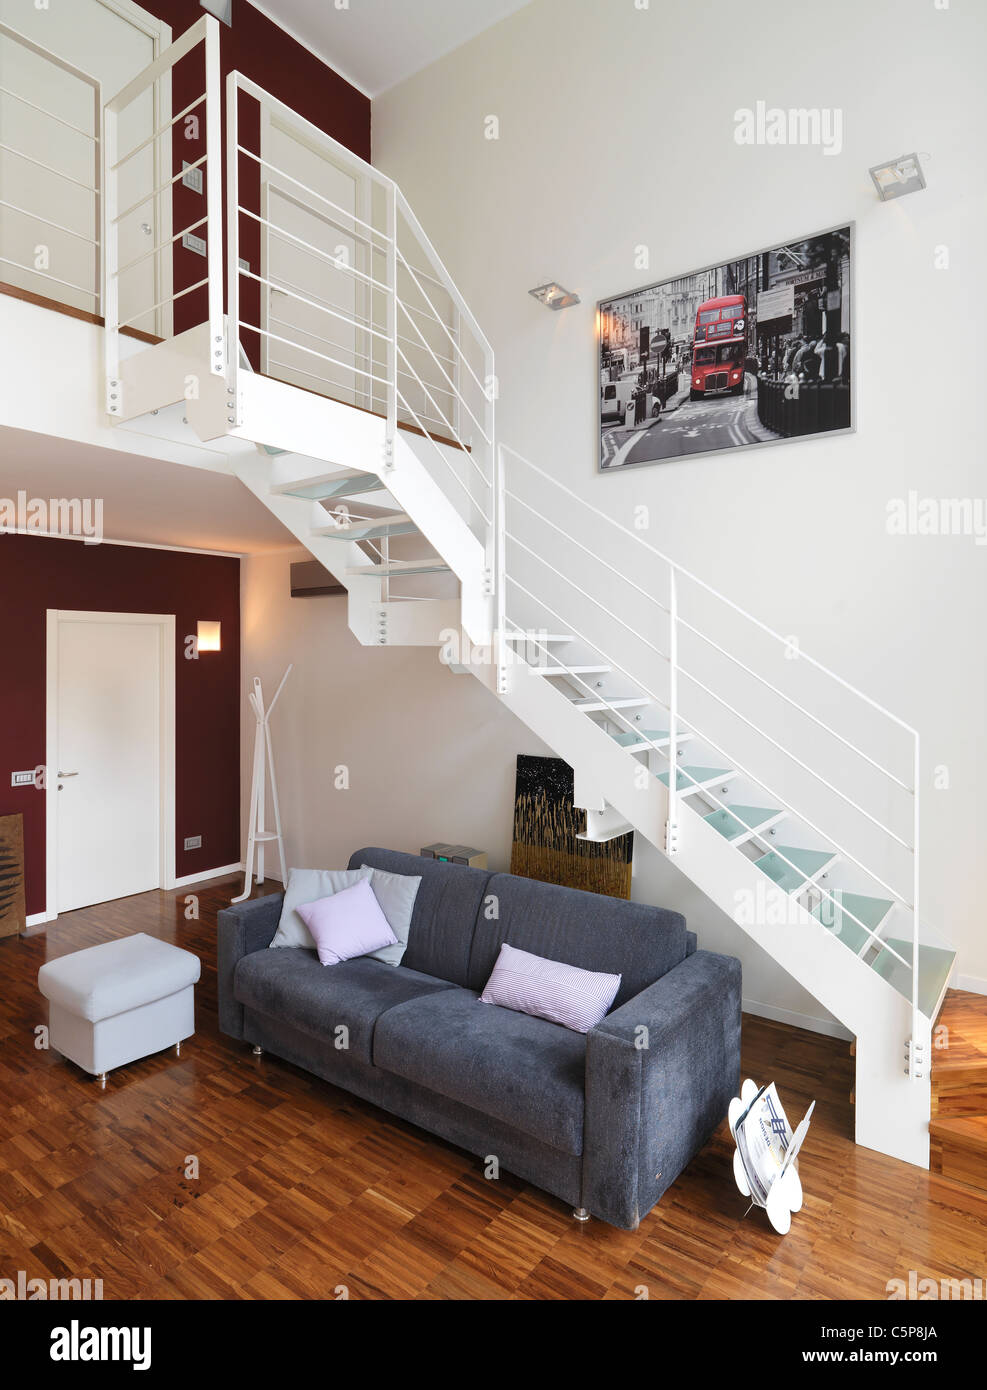 Metal Living Room Furniture Modern Living Room With Gray Sofa Under A Metal Staircase Stock